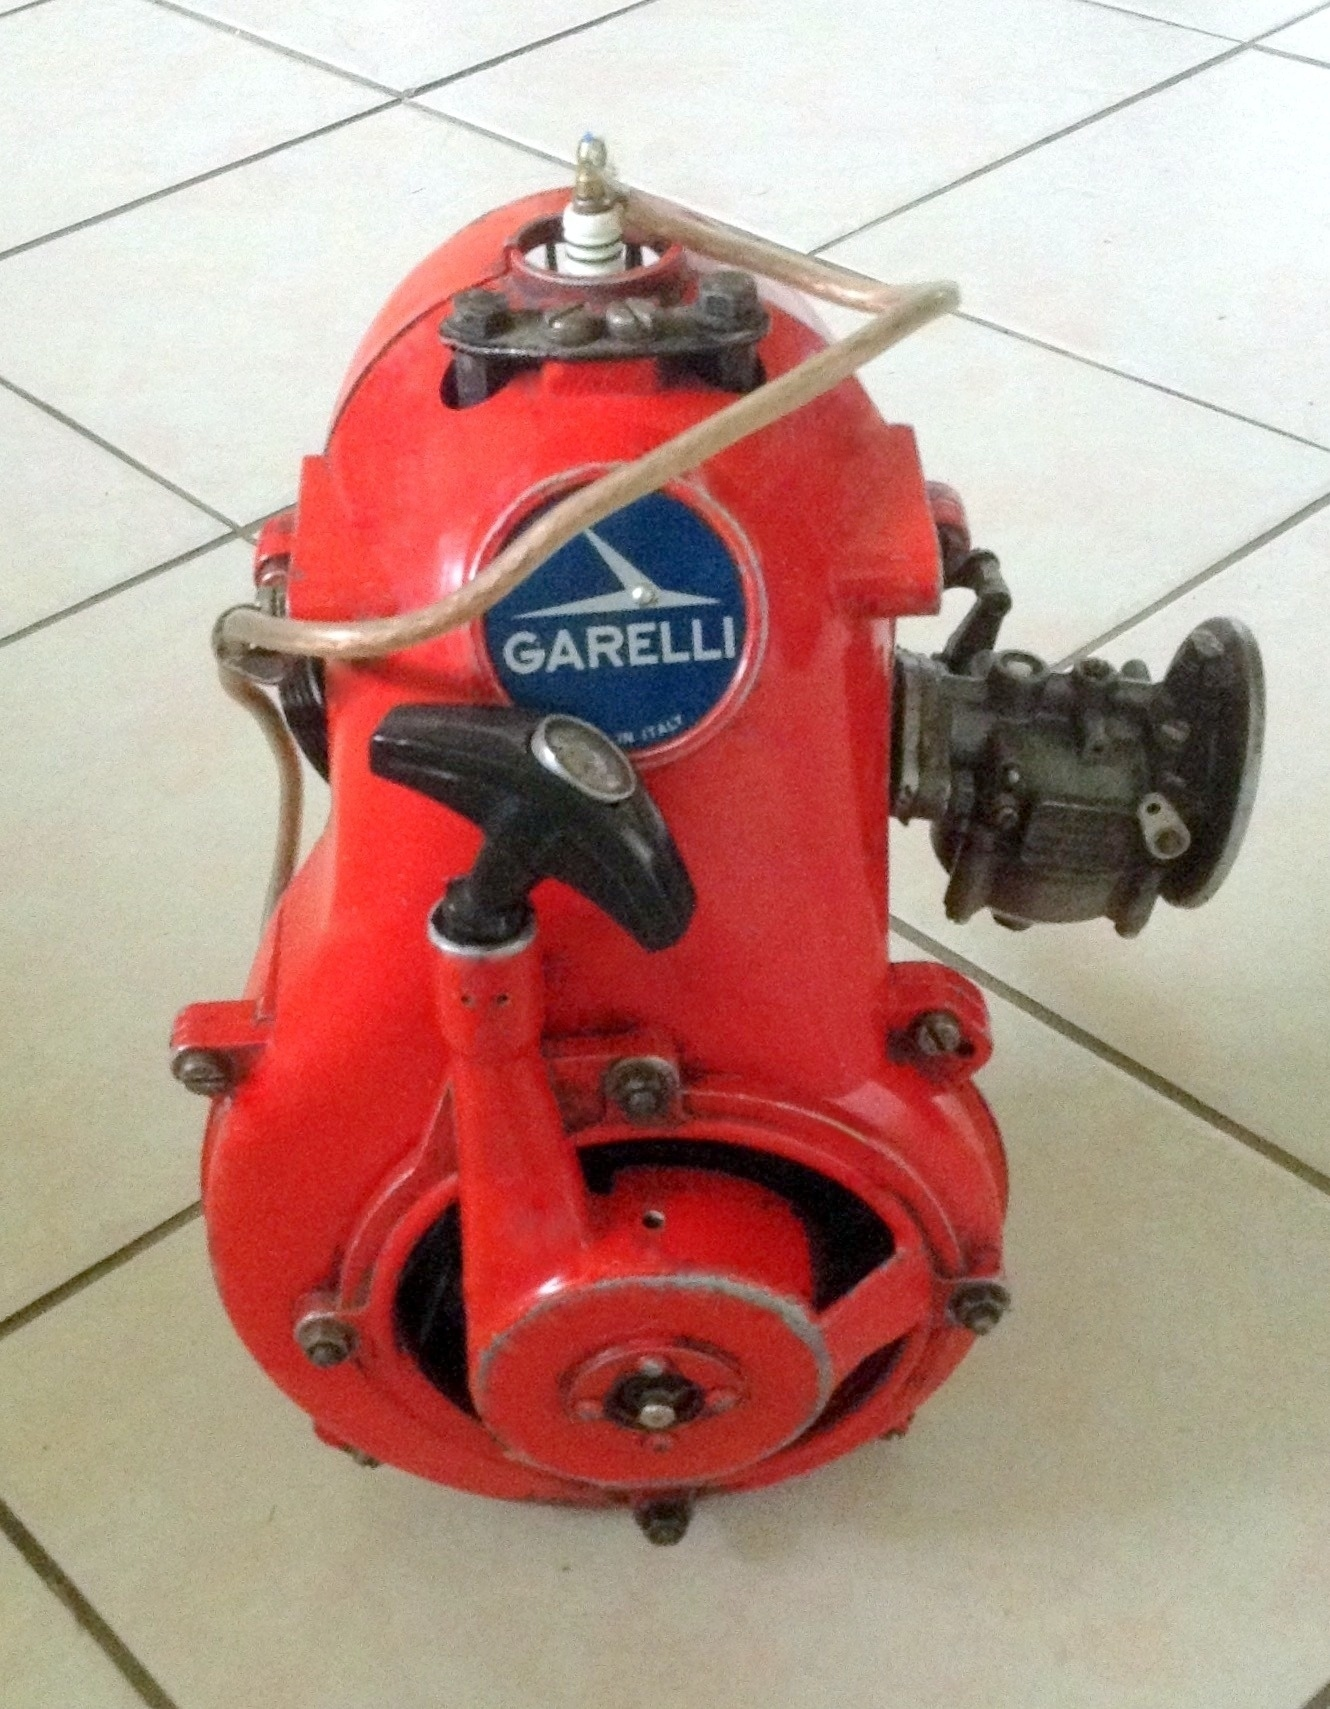 GARELLI 98cc Engine